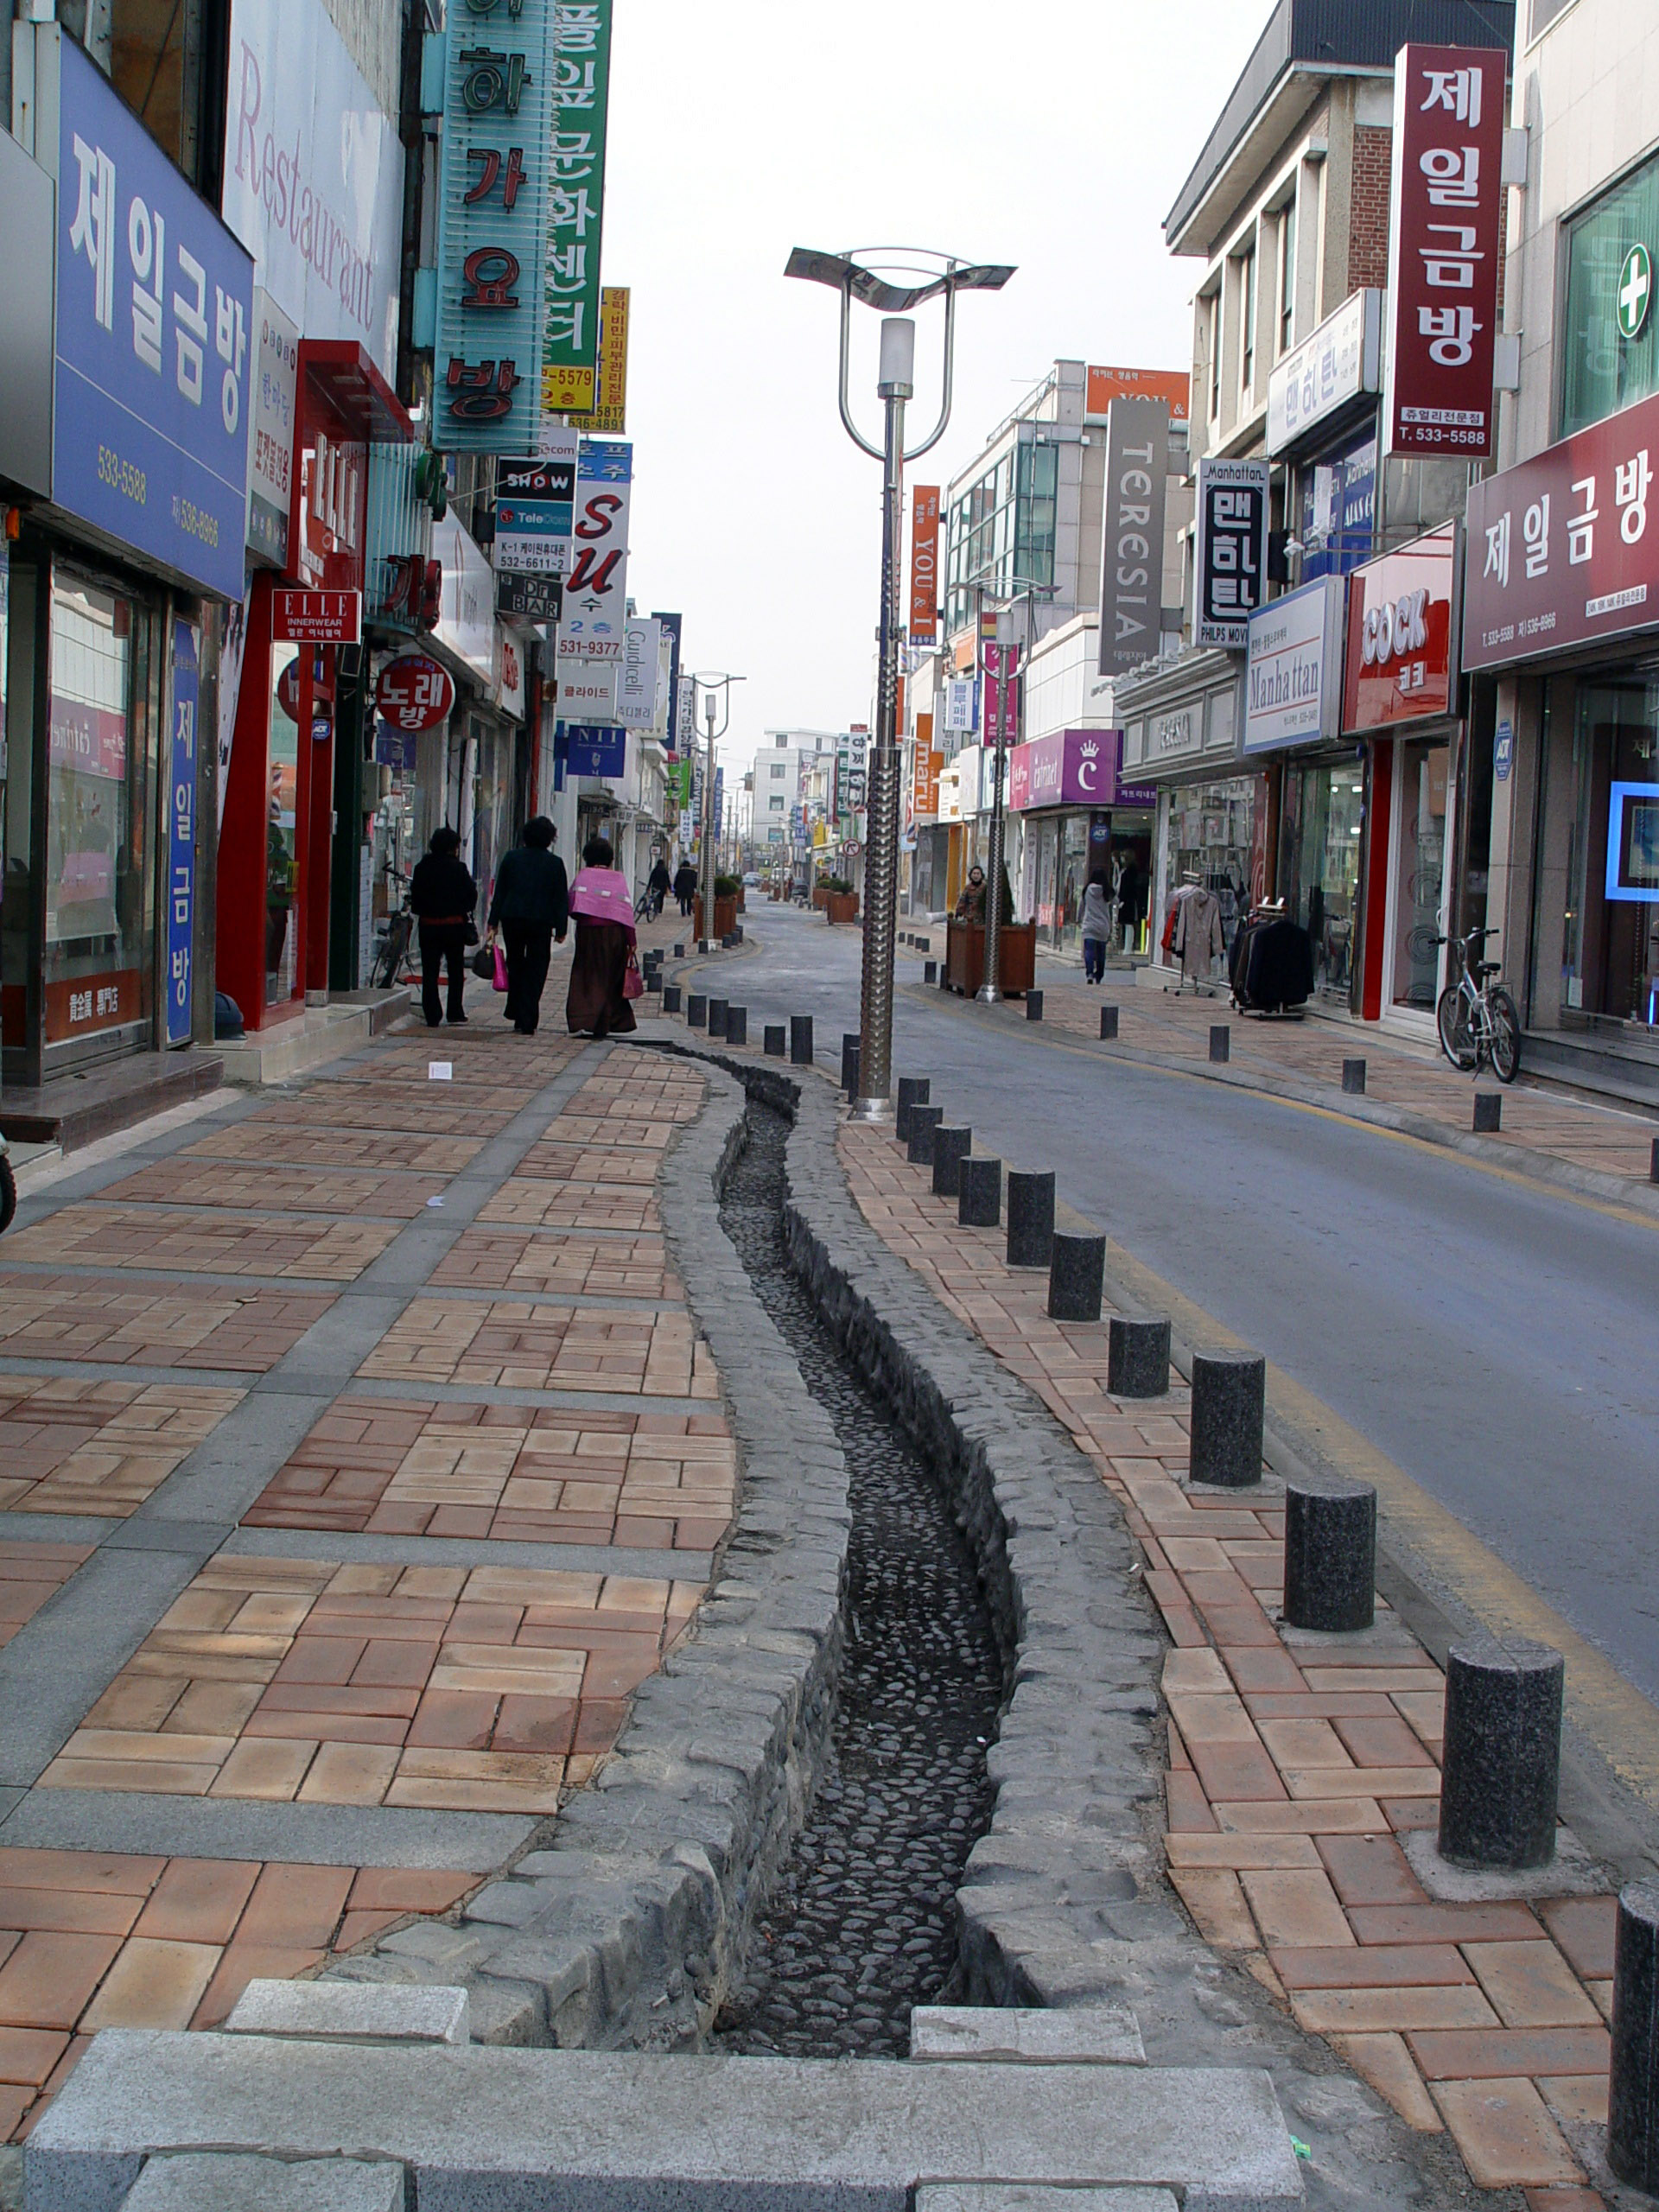 Town Road Codes For Bloxburge: Street In Central Jeongeup In South Korea Image